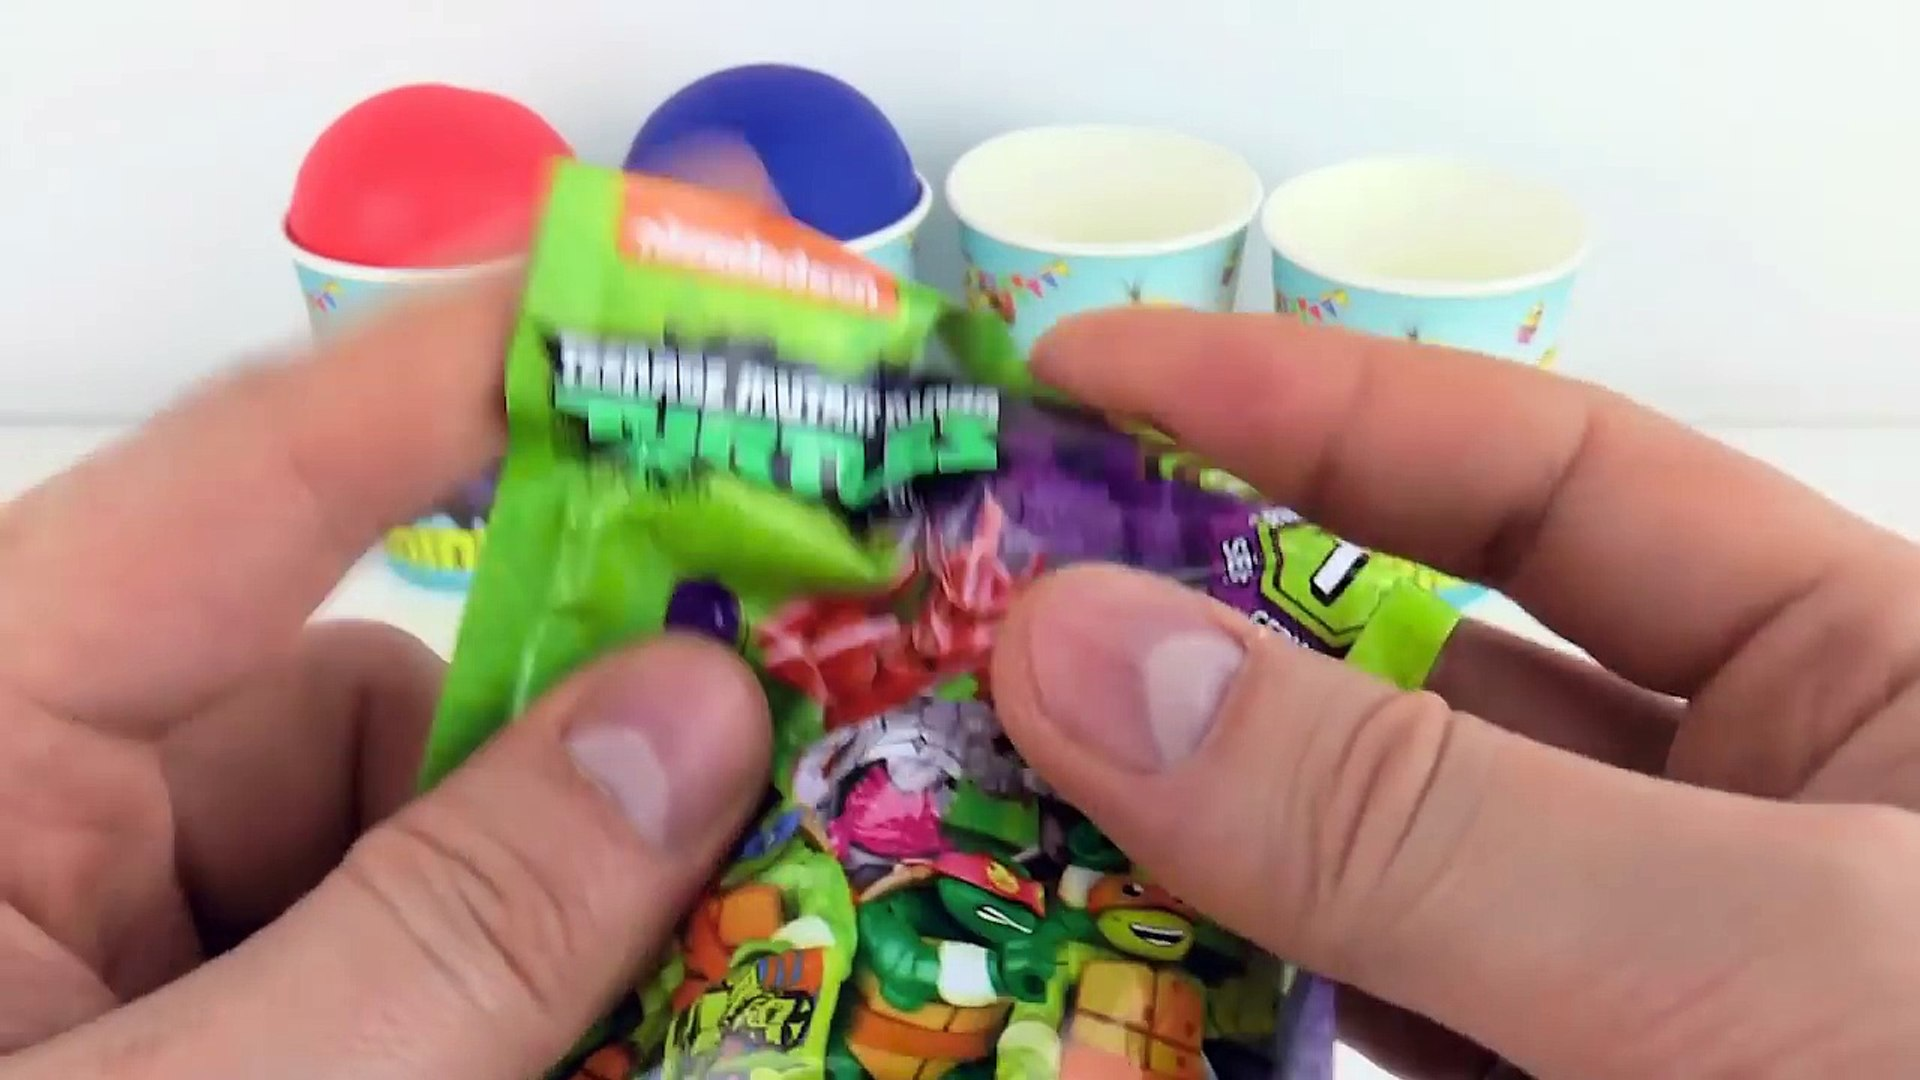 Play Doh Learn Colors Kinder Surprise Eggs Play Doh Minions Ninja Turtles For Kids Lala Do Play Doh